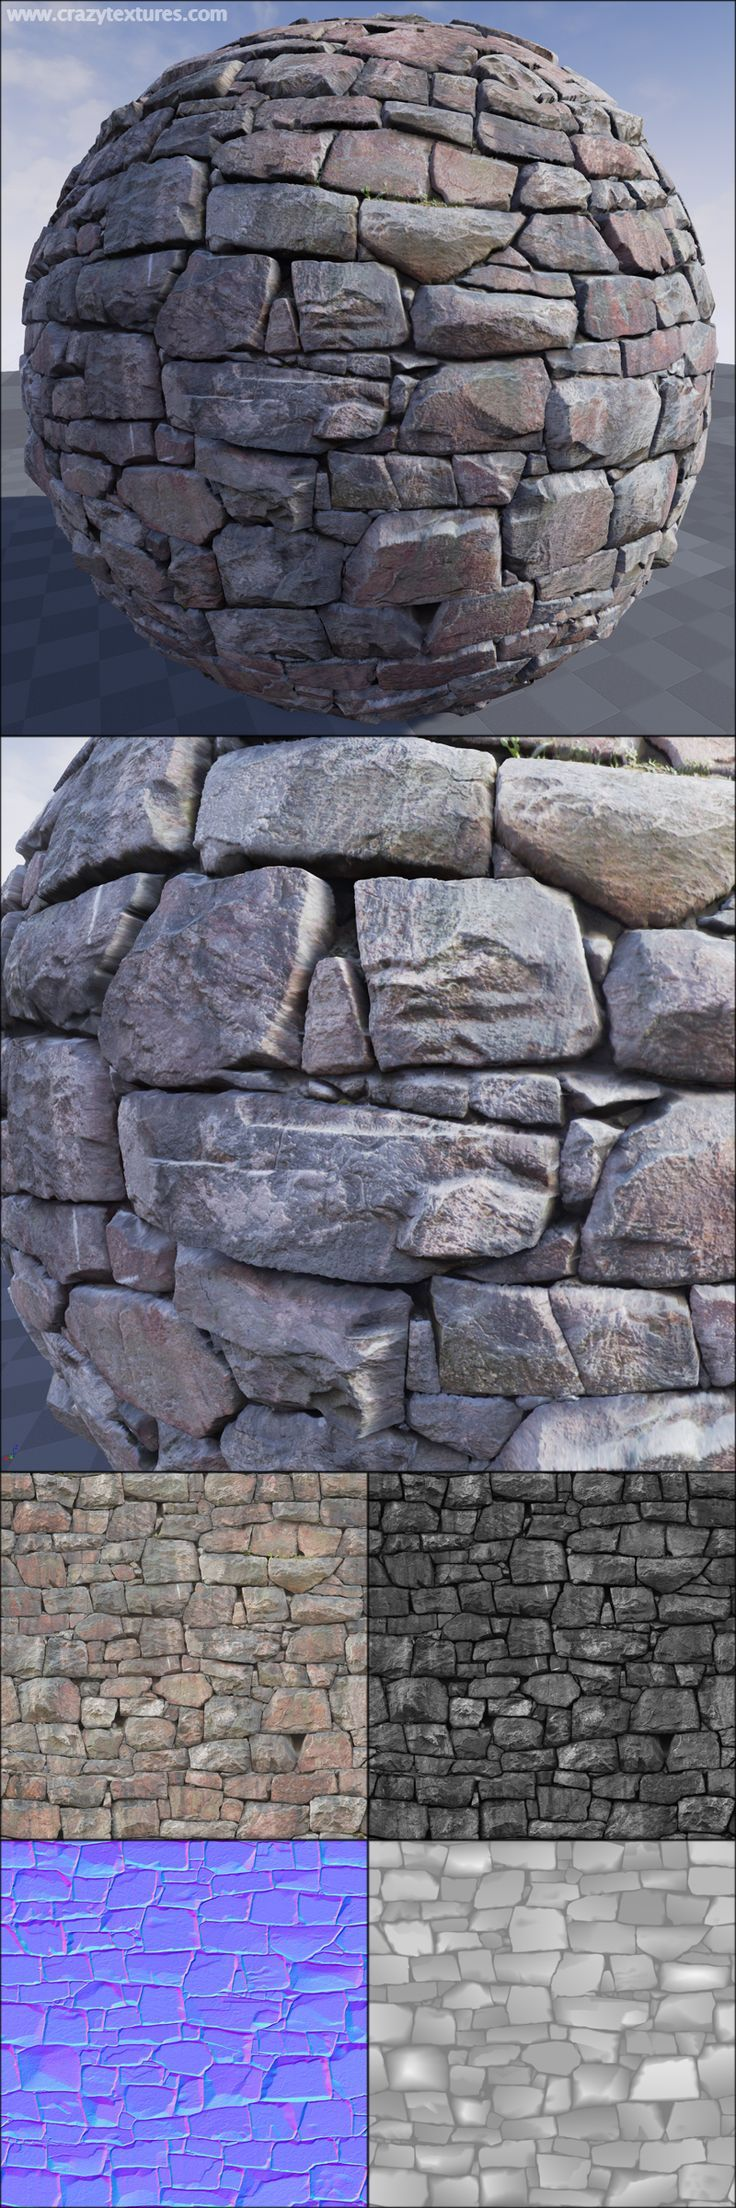 Unfinished brick wall texture for creating environment texture maps - A Seamless Stones Wall Texture From Www Crazytextures Com This